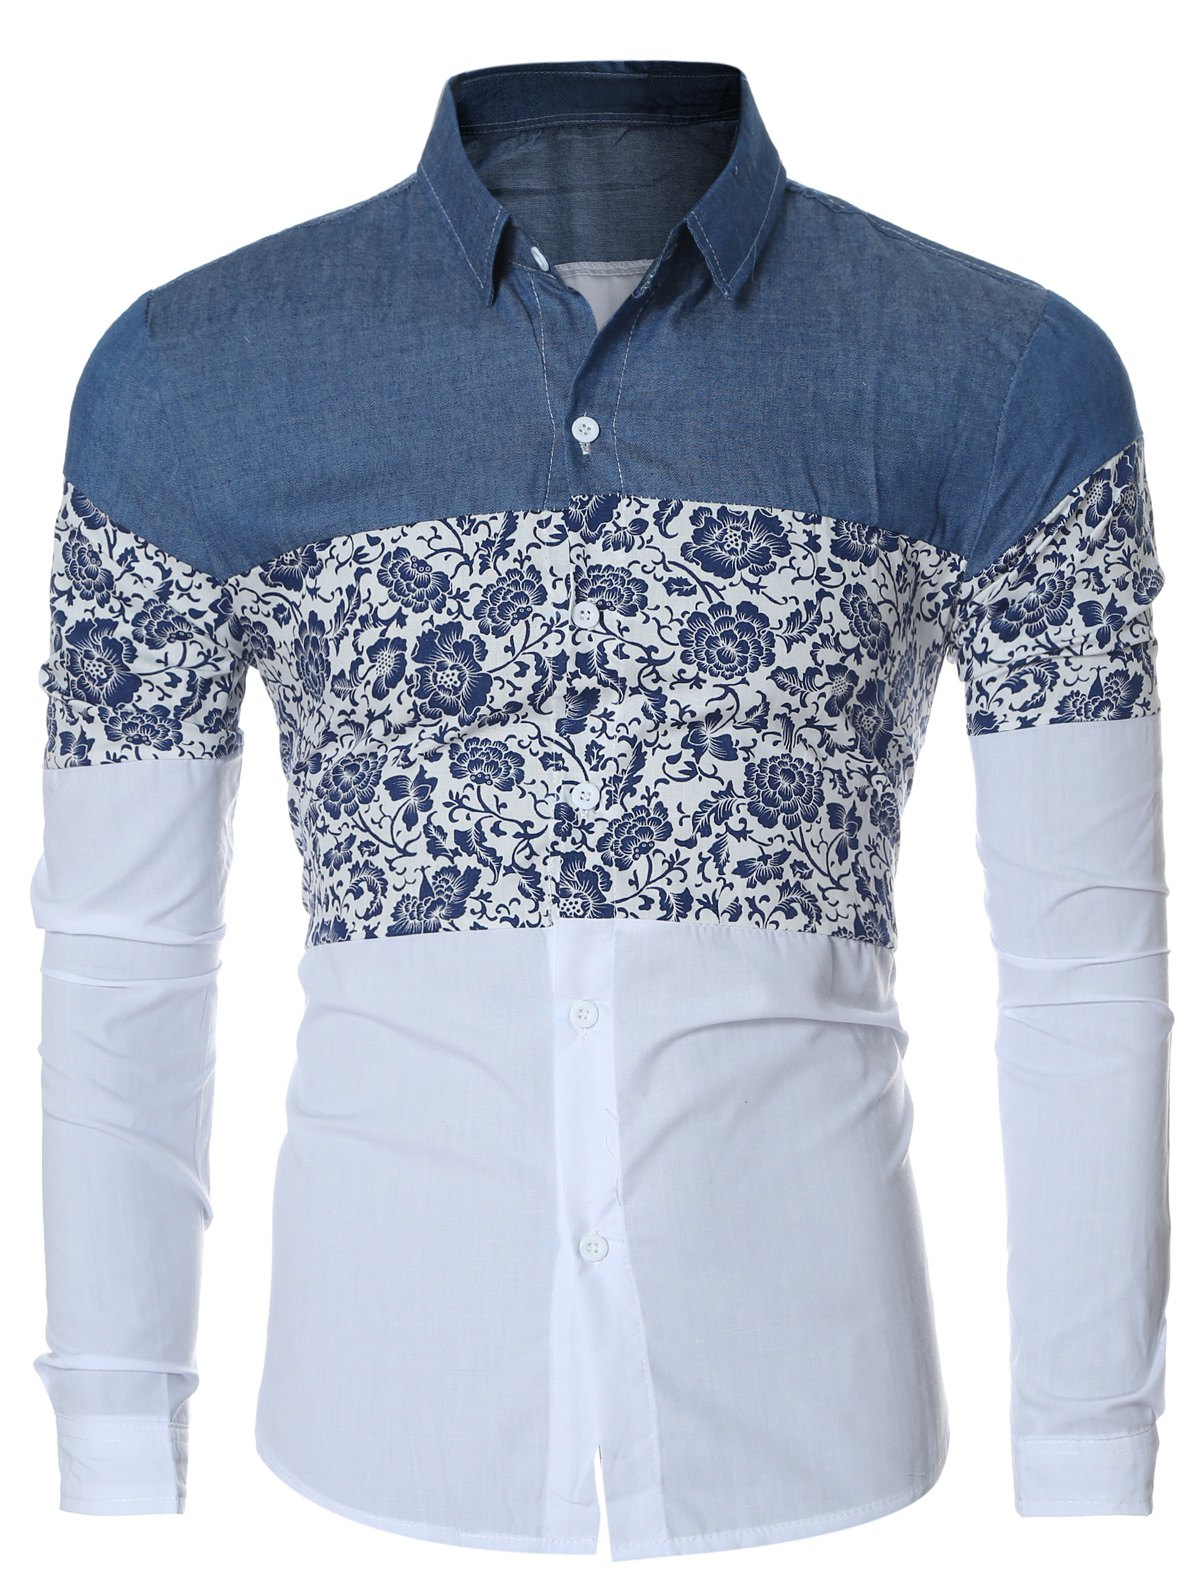 Floral Print Chambray Spliced Long Sleeve Men's Shirt - BLUE 2XL